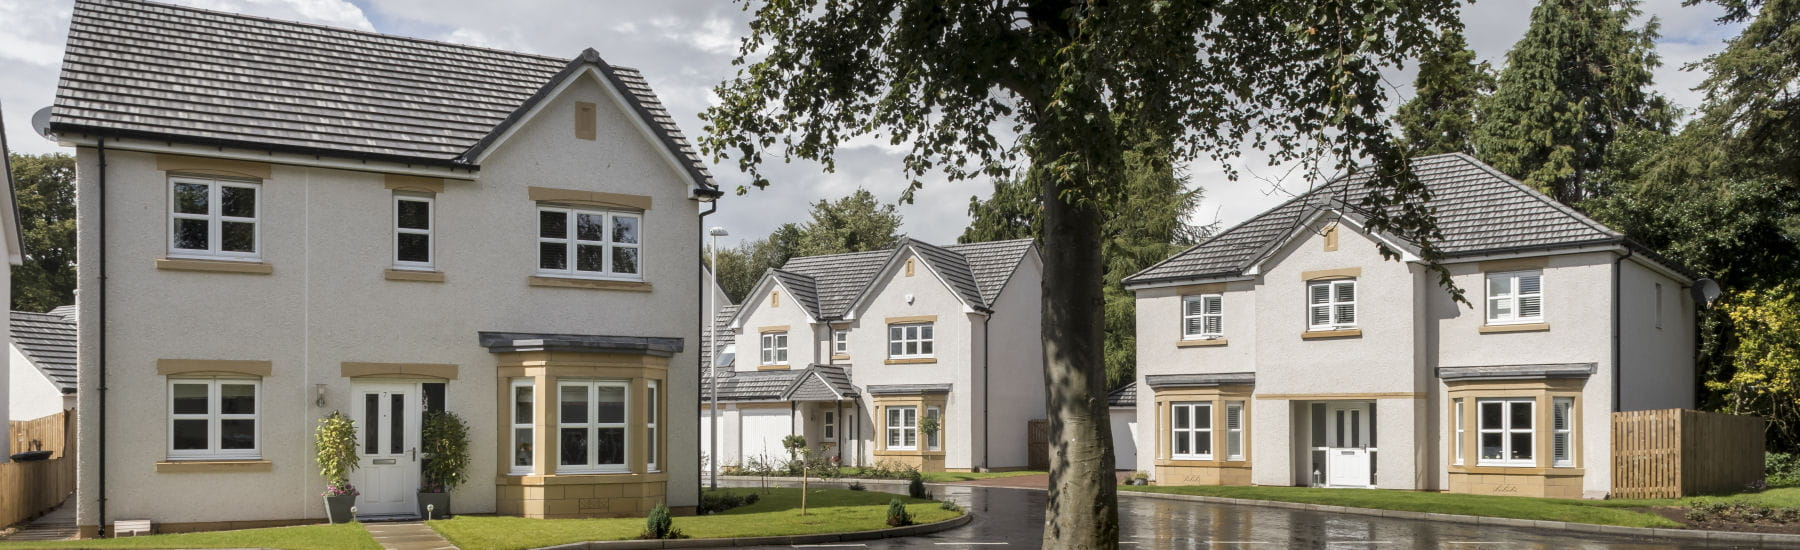 Pleasant New Build Homes Scotland 2 5 Bedroom Homes For Sale In Download Free Architecture Designs Xerocsunscenecom